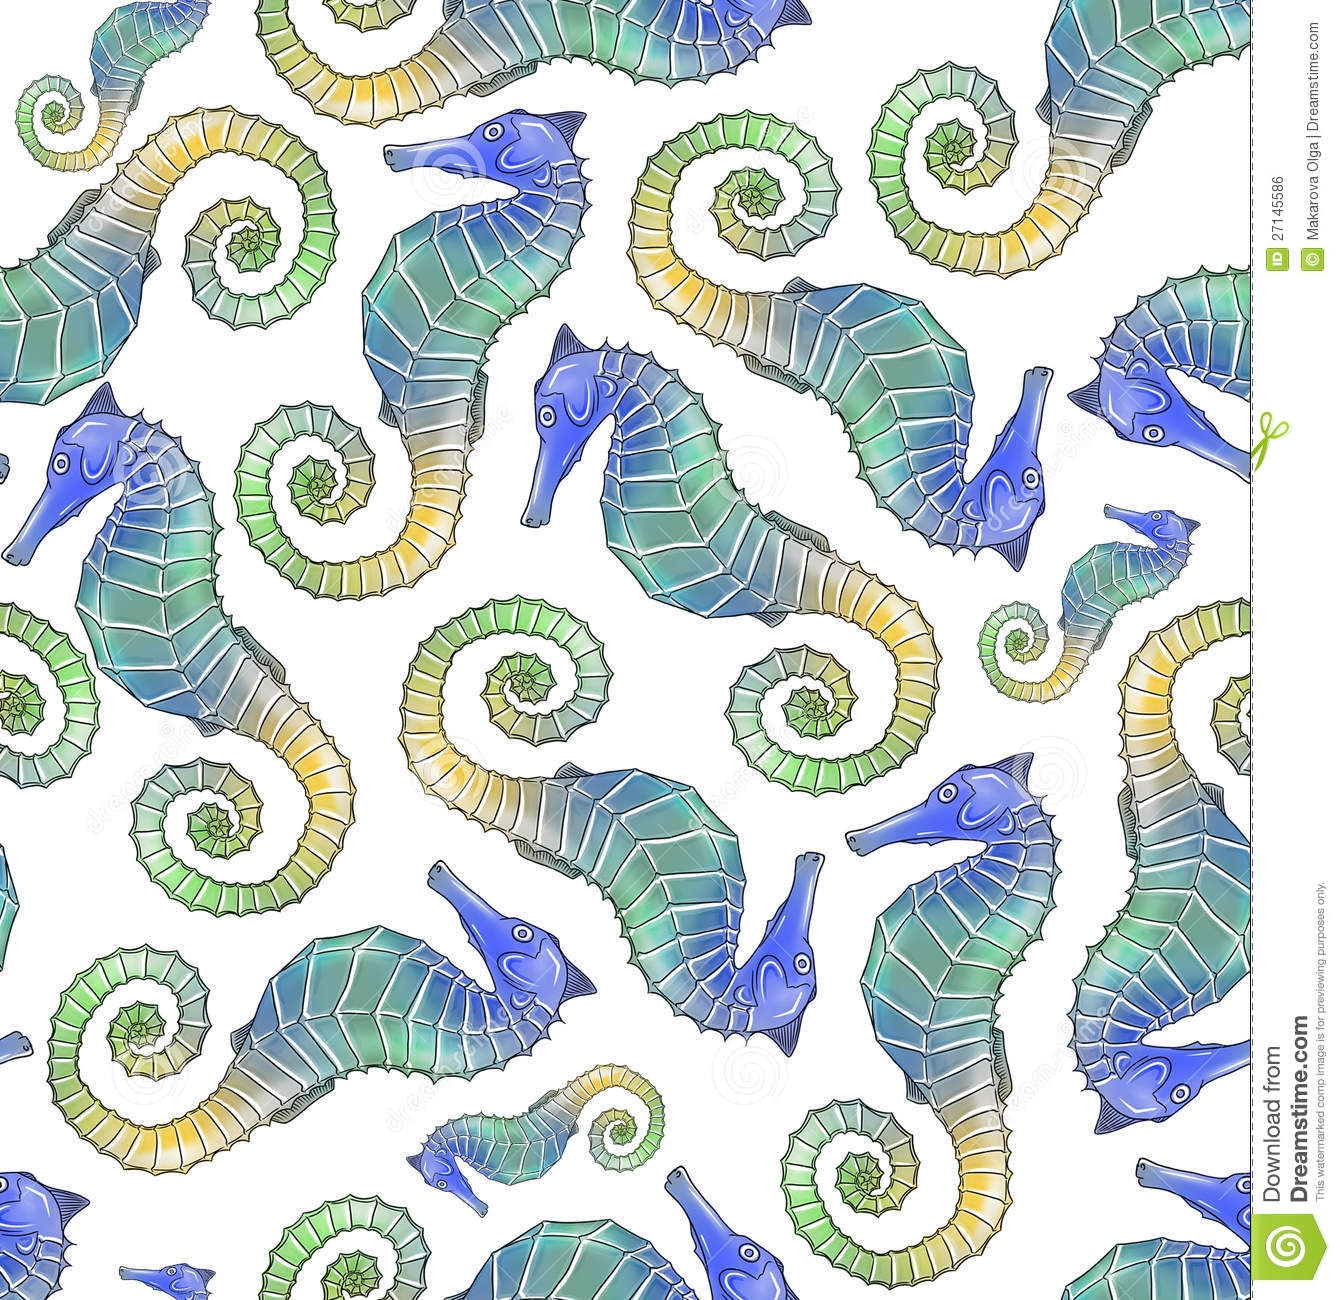 seahorse coloring page - royalty free stock image seahorse seamless pattern tile image